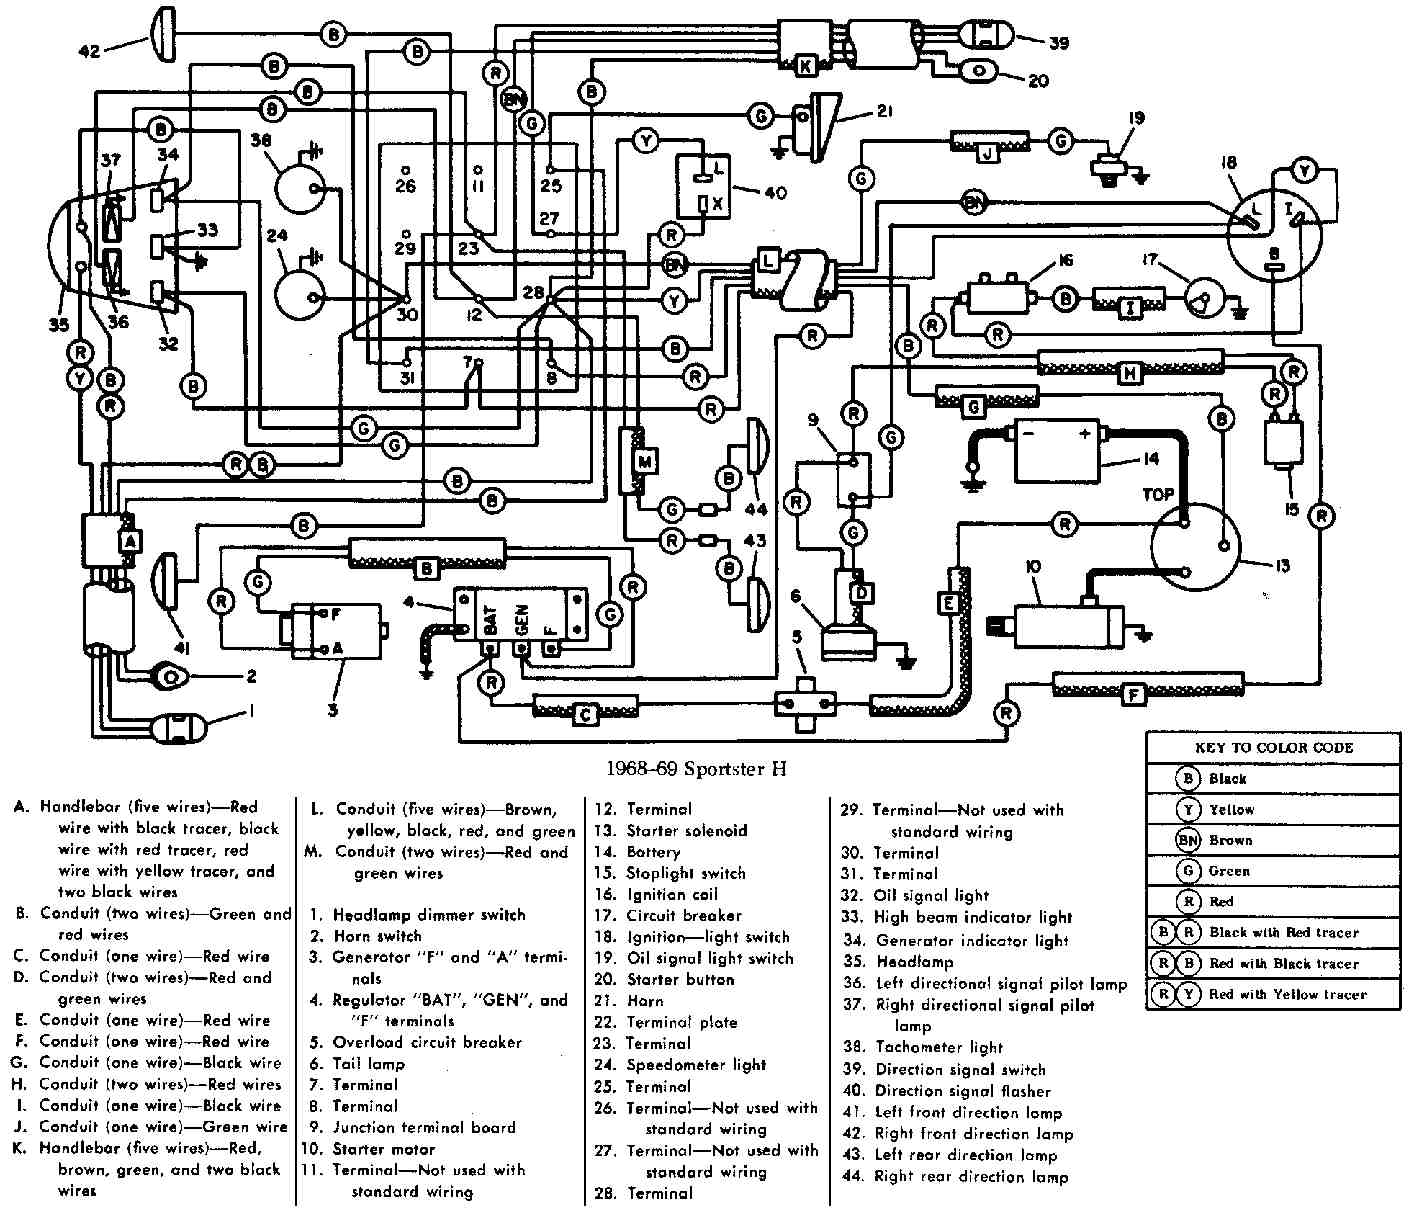 Harley+Davidson+Sportster+1968 1969+Electrical+Wiring+Diagram 1968 mustang wiring diagrams with tach, please help ford mustang wiring diagram for 69 mustang at gsmportal.co